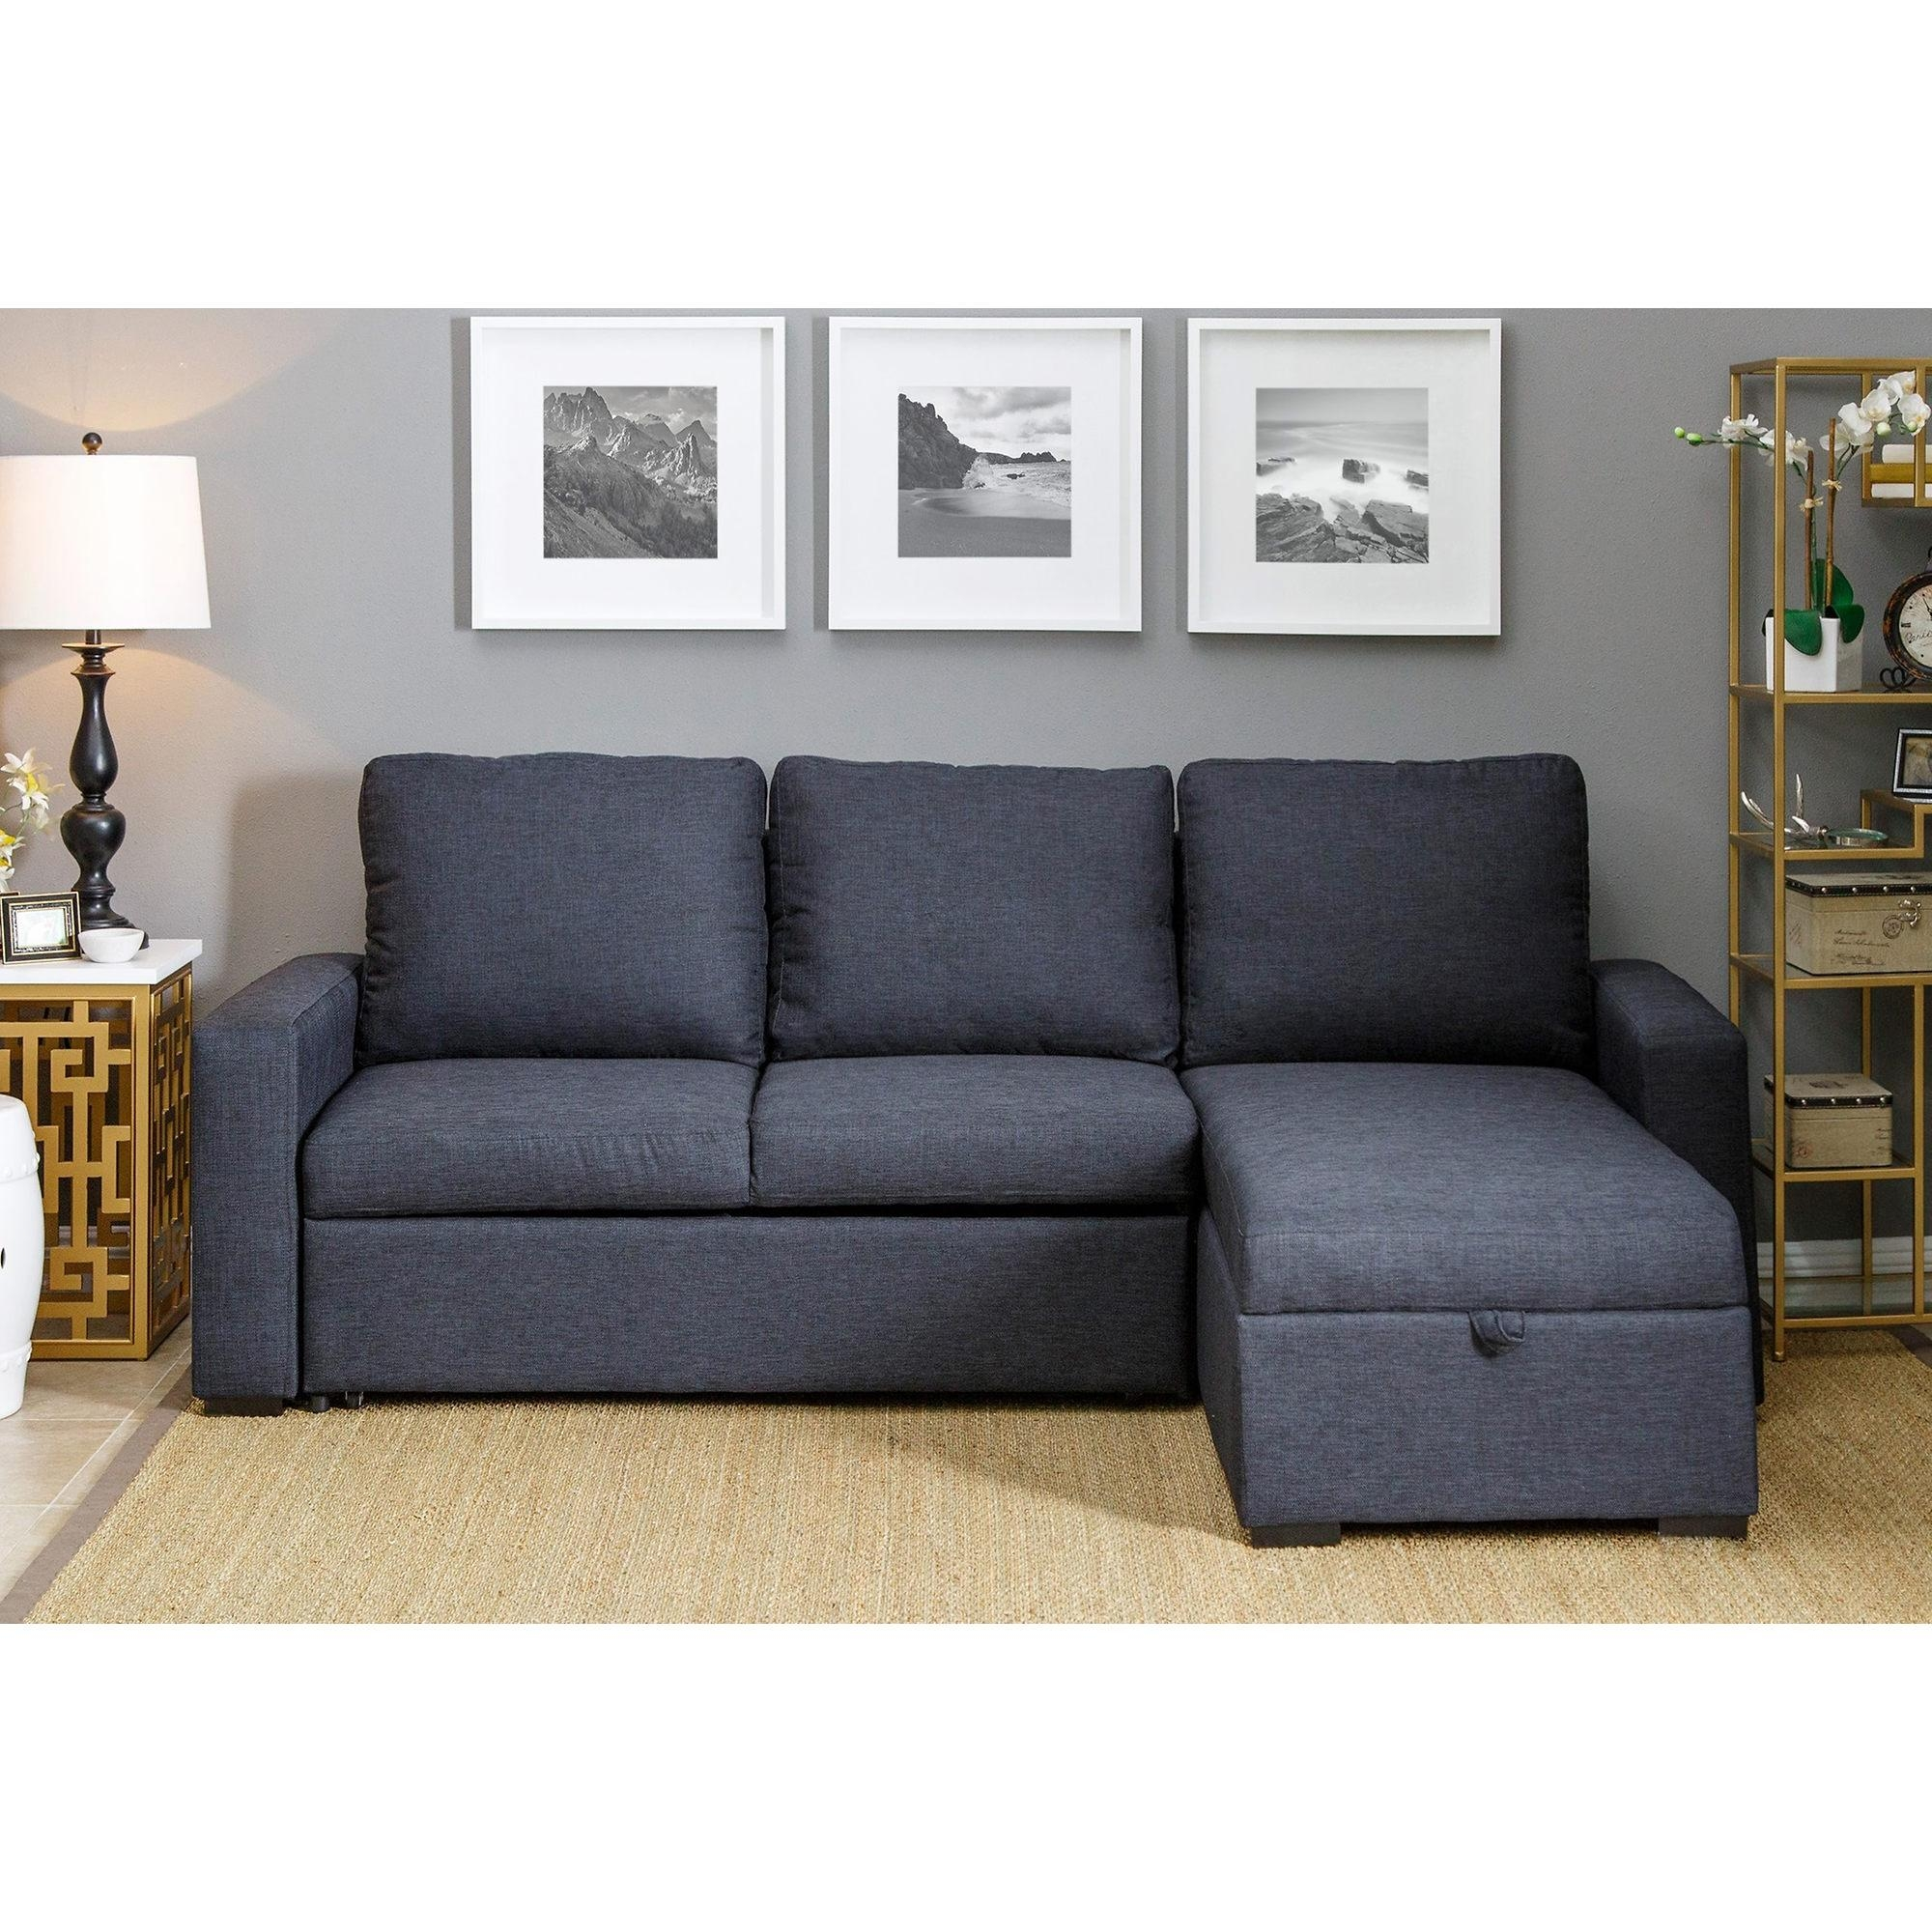 Sofas Center : Beautiful Abbyson Living Charlotte Beigeal Sofa And For Abbyson Living Sectionals (View 6 of 15)